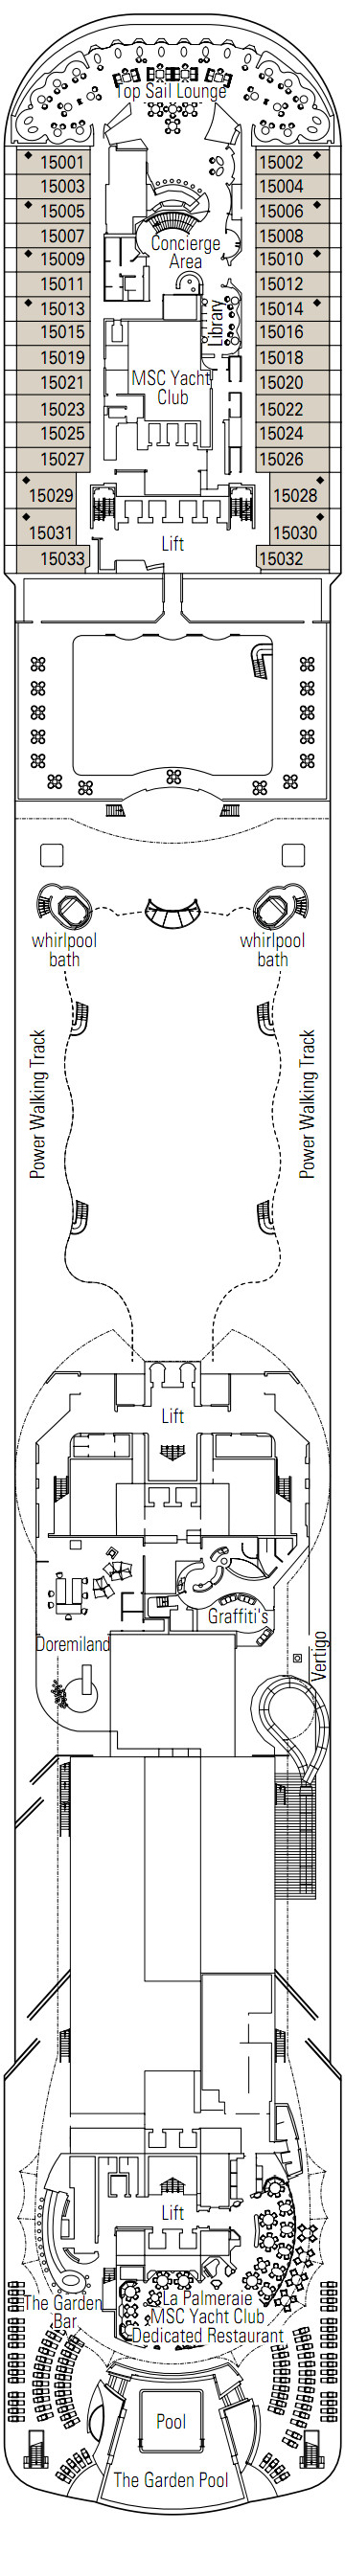 MSC Preziosa Mercurio Deck 15 layout